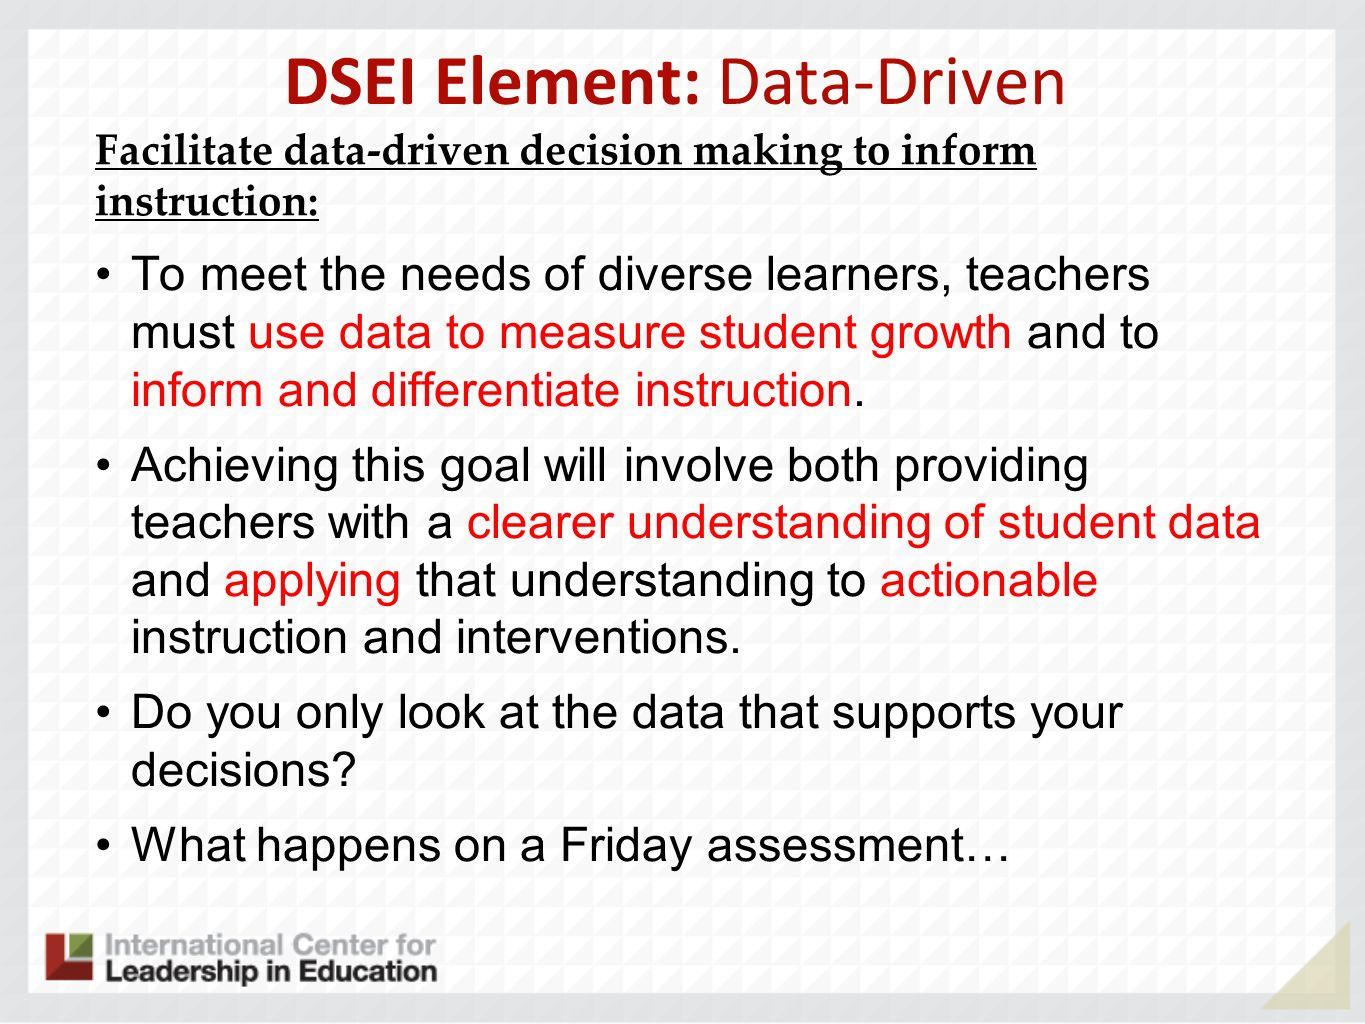 DSEI Element: Data-Driven Facilitate data-driven decision making to inform instruction: To meet the needs of diverse learners, teachers must use data